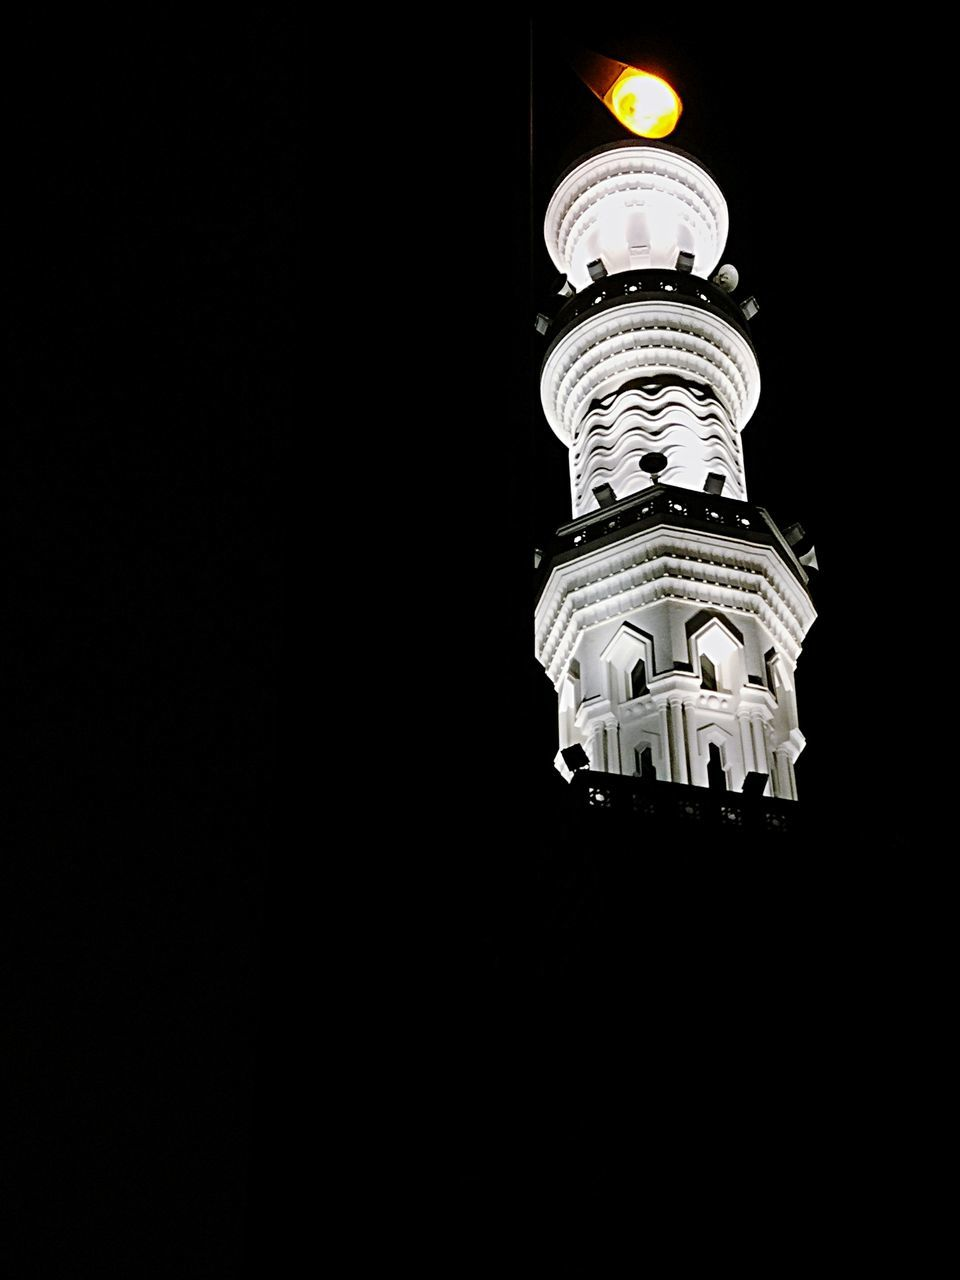 Low Angel View Of Illuminated Tower At Night